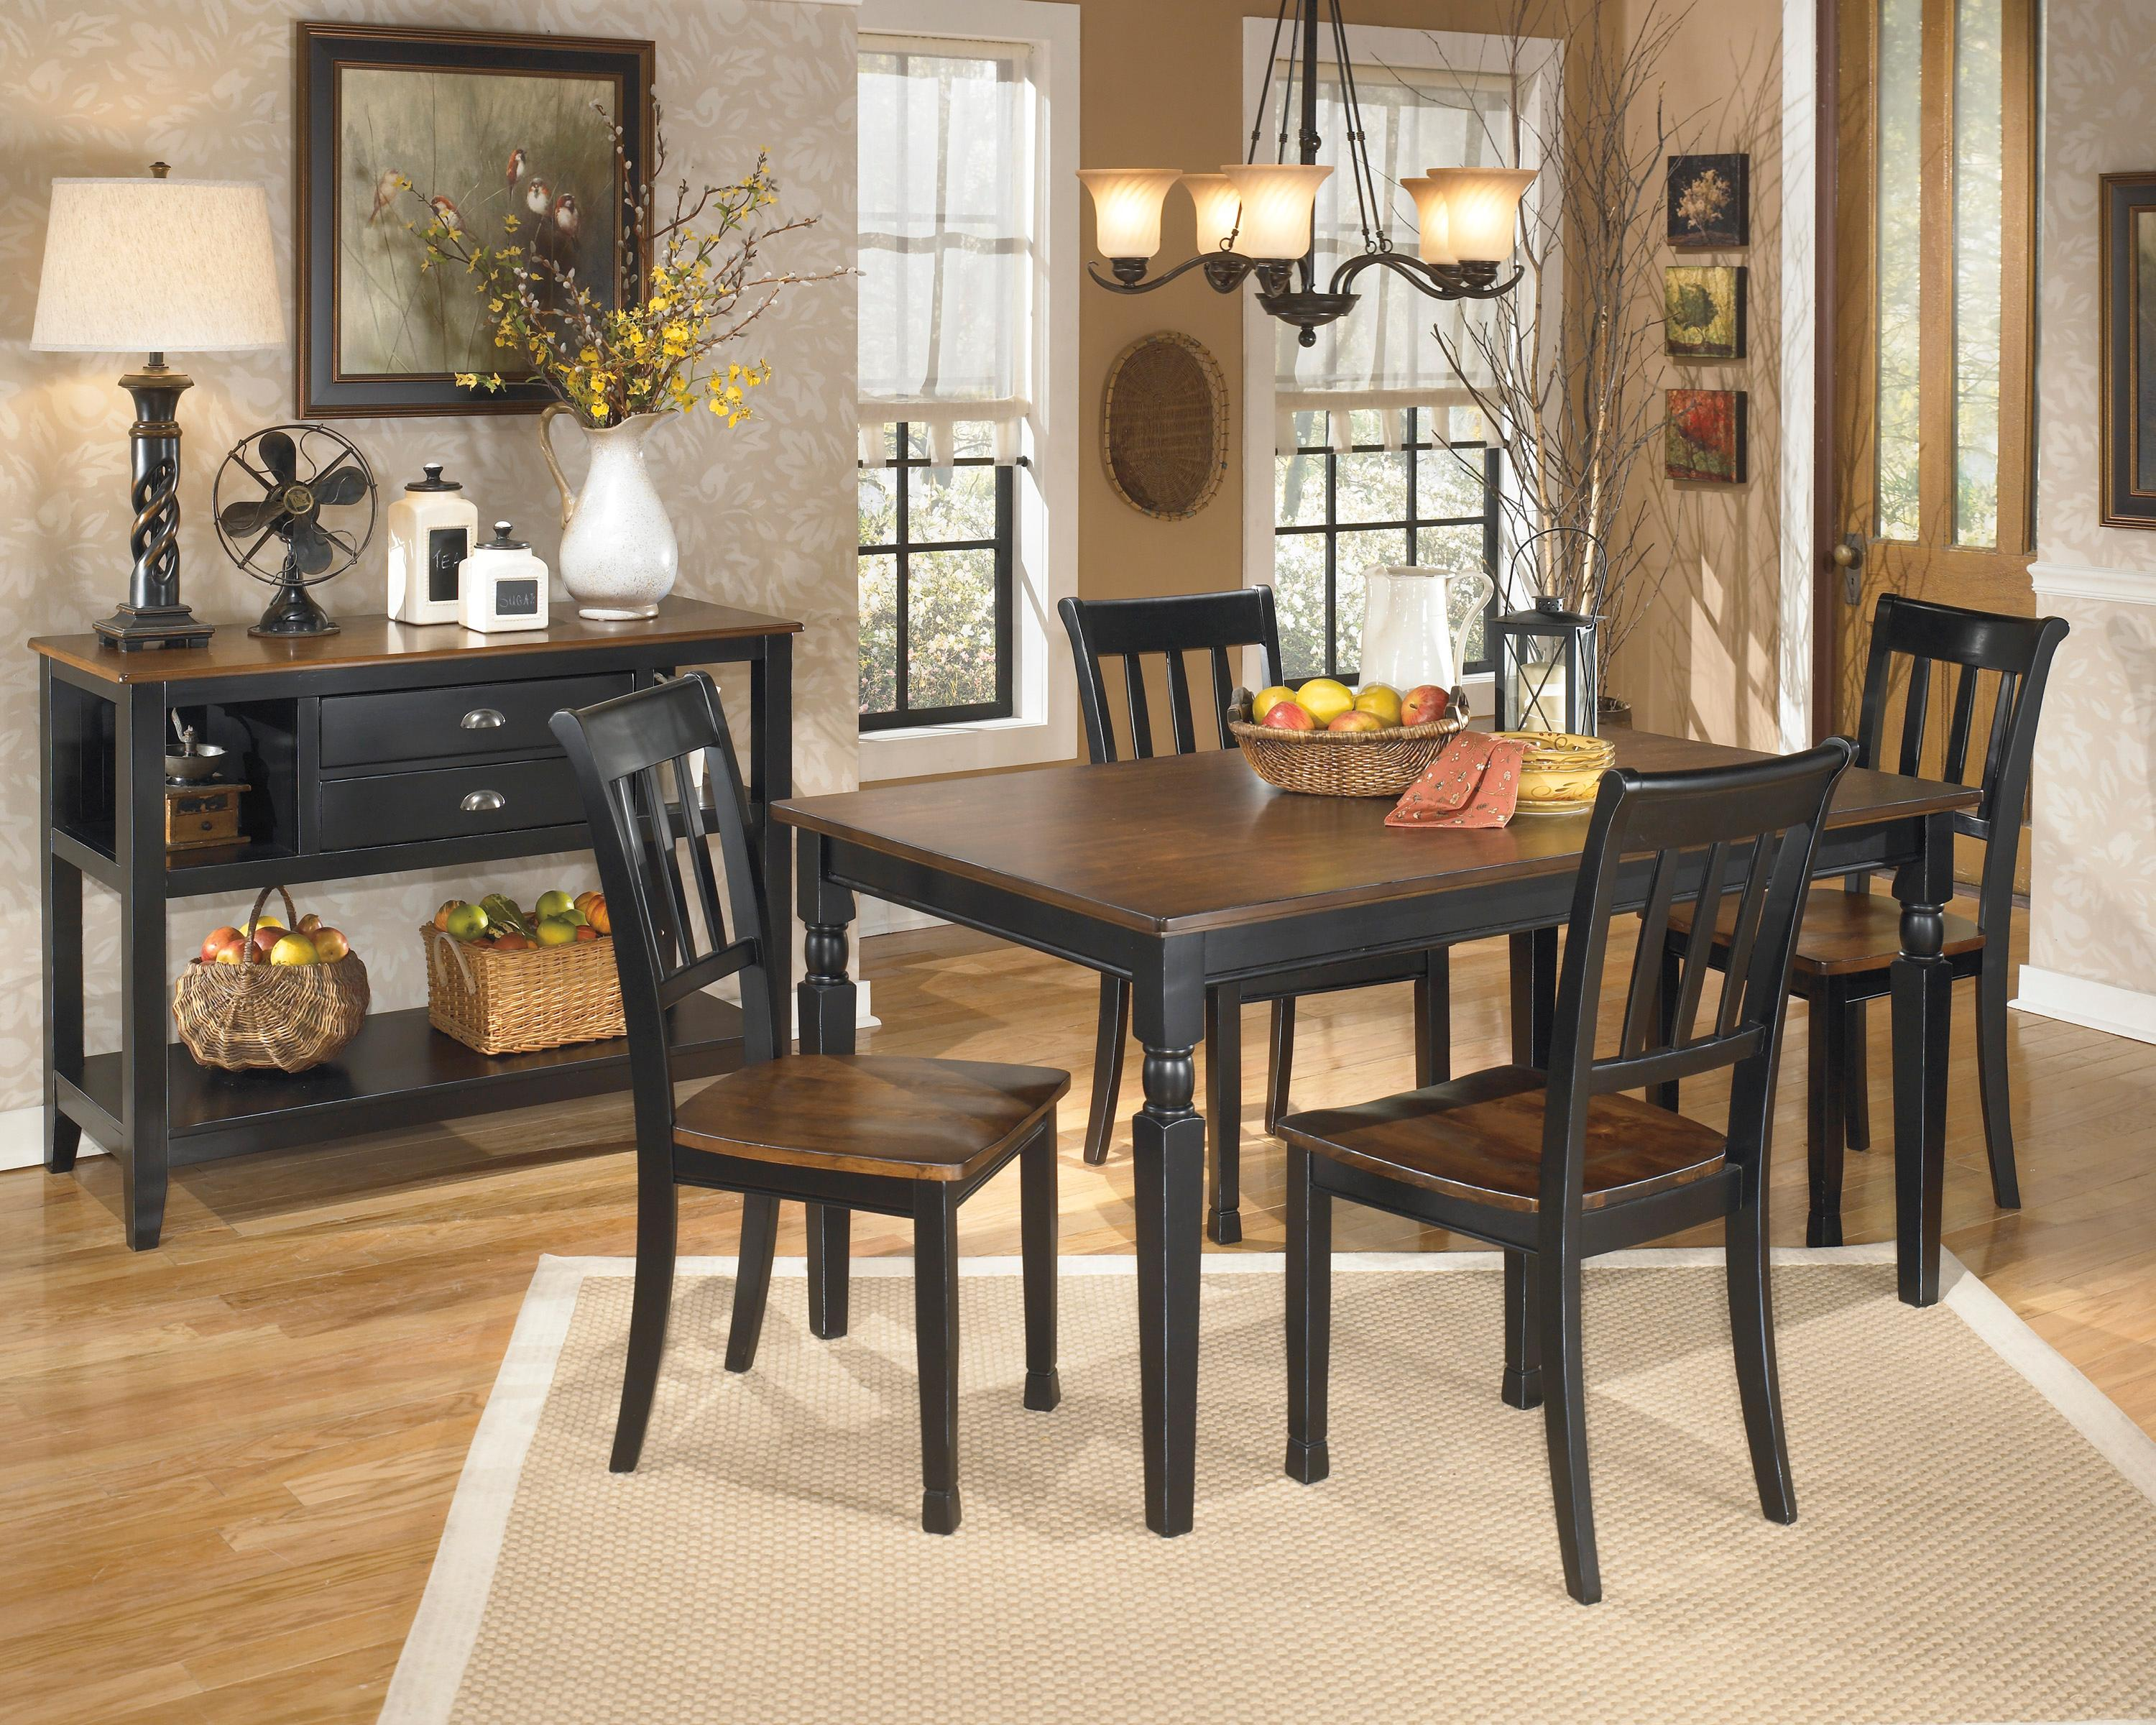 Signature Design by Ashley Owingsville Casual Dining Room Group - Item Number: D580 Dining Room Group 1